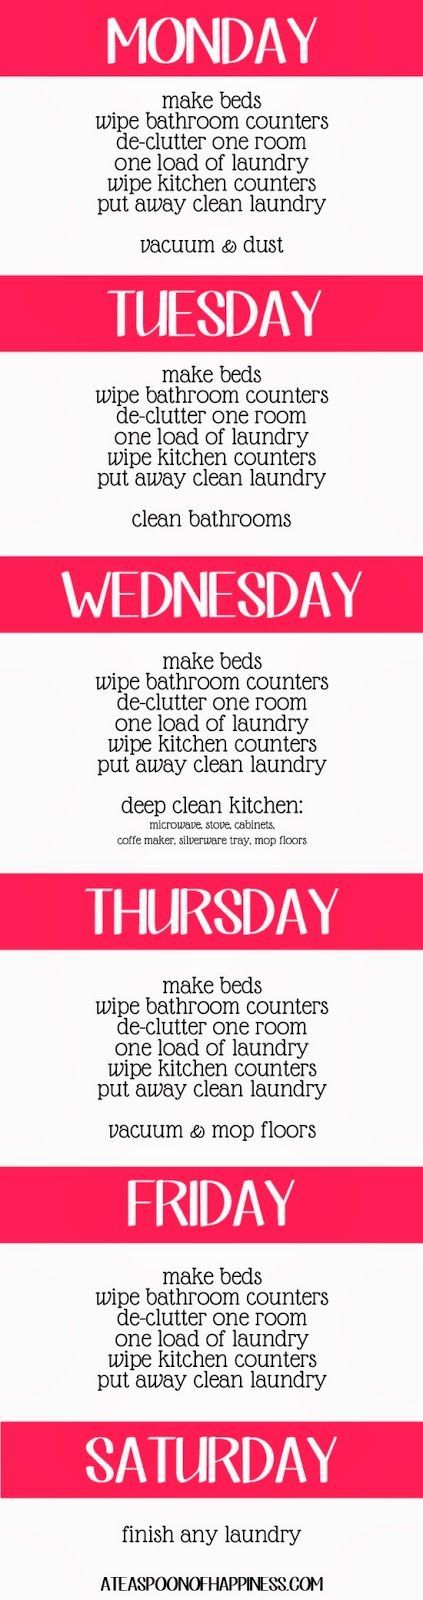 {re}cycled consign and design: Shark Steam & Mop // Cleaning Schedule                                                                                                                                                                                 More